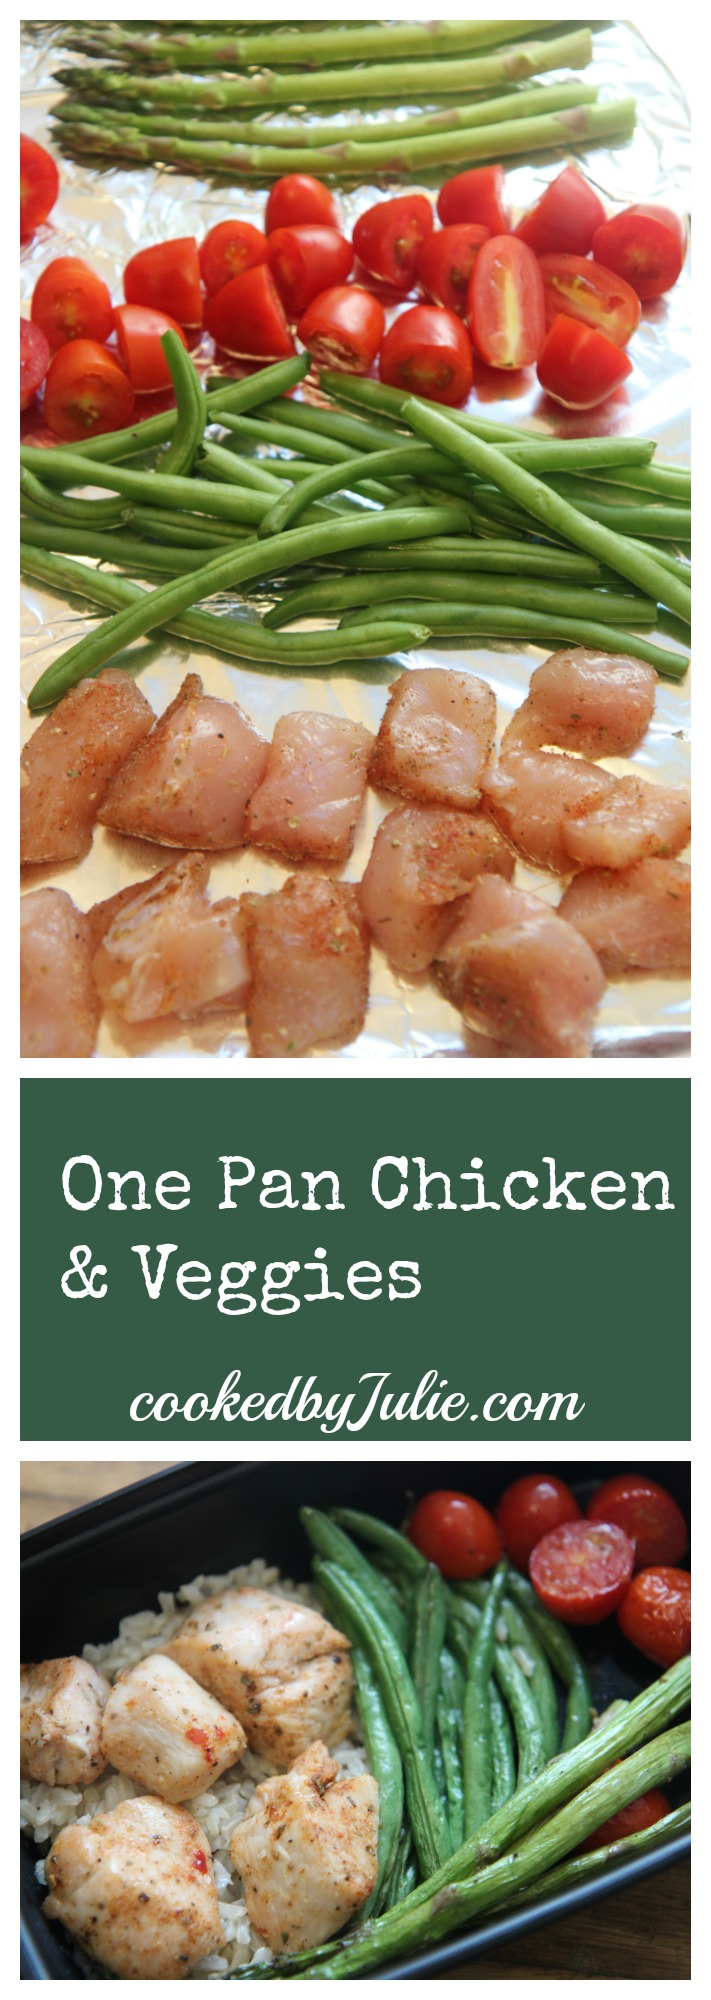 One Pan Chicken and Veggies Recipe with Video from Cooked By Julie